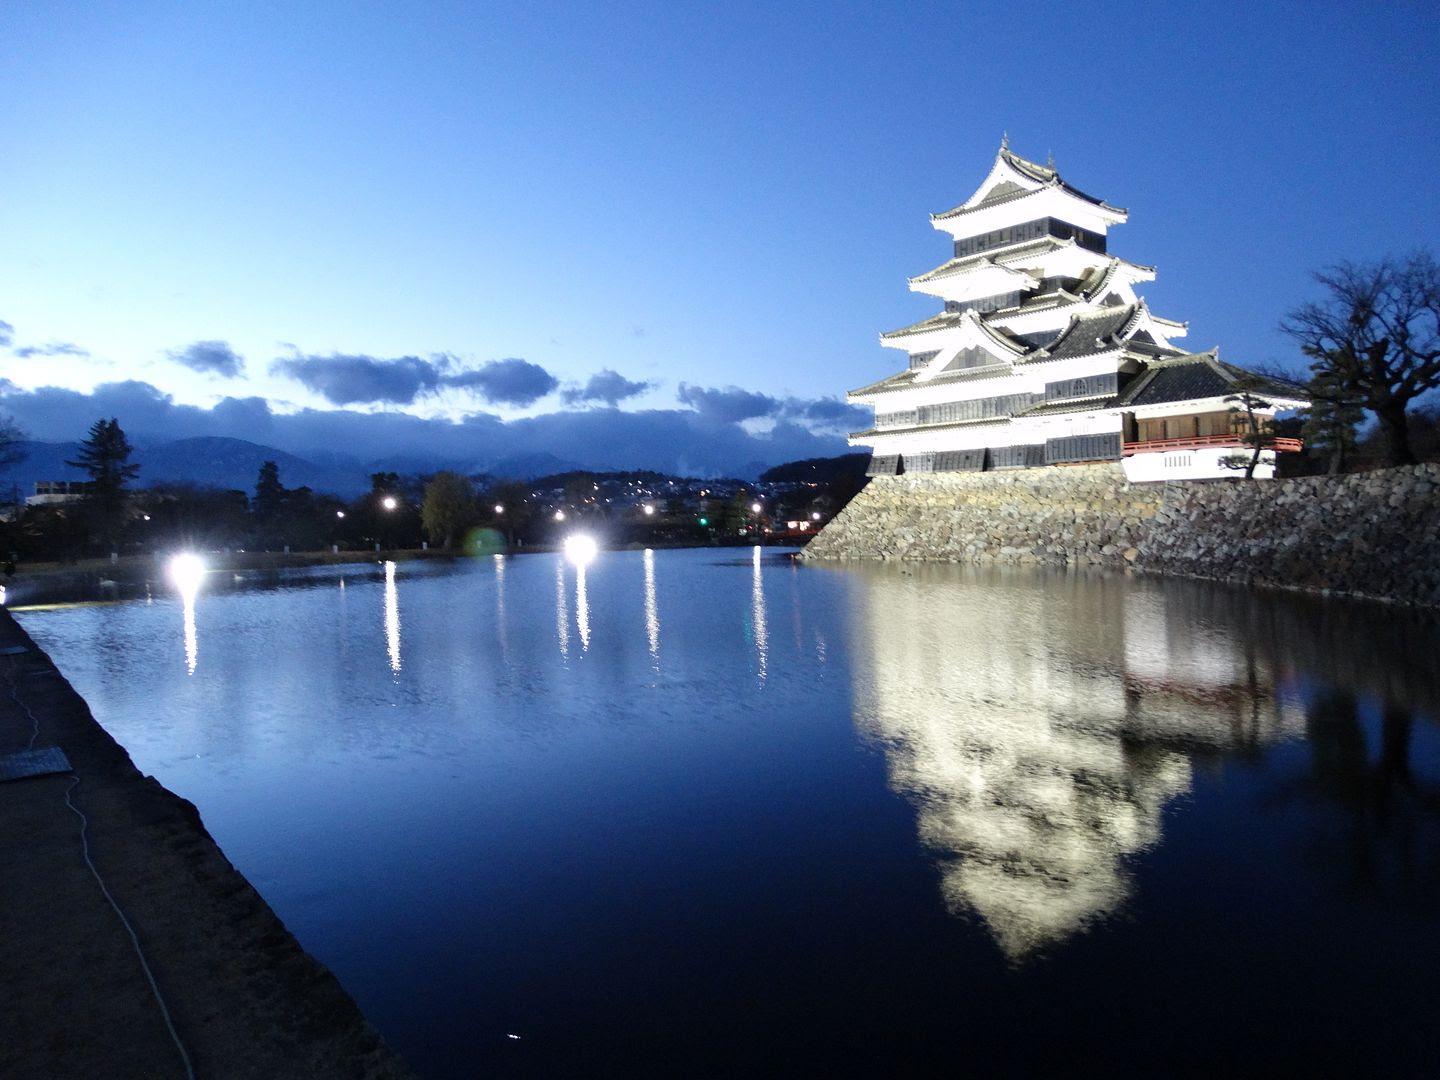 Matsumoto Castle and Water at Night photo 2013-12-20DSC00327_zps1b890b5a.jpg